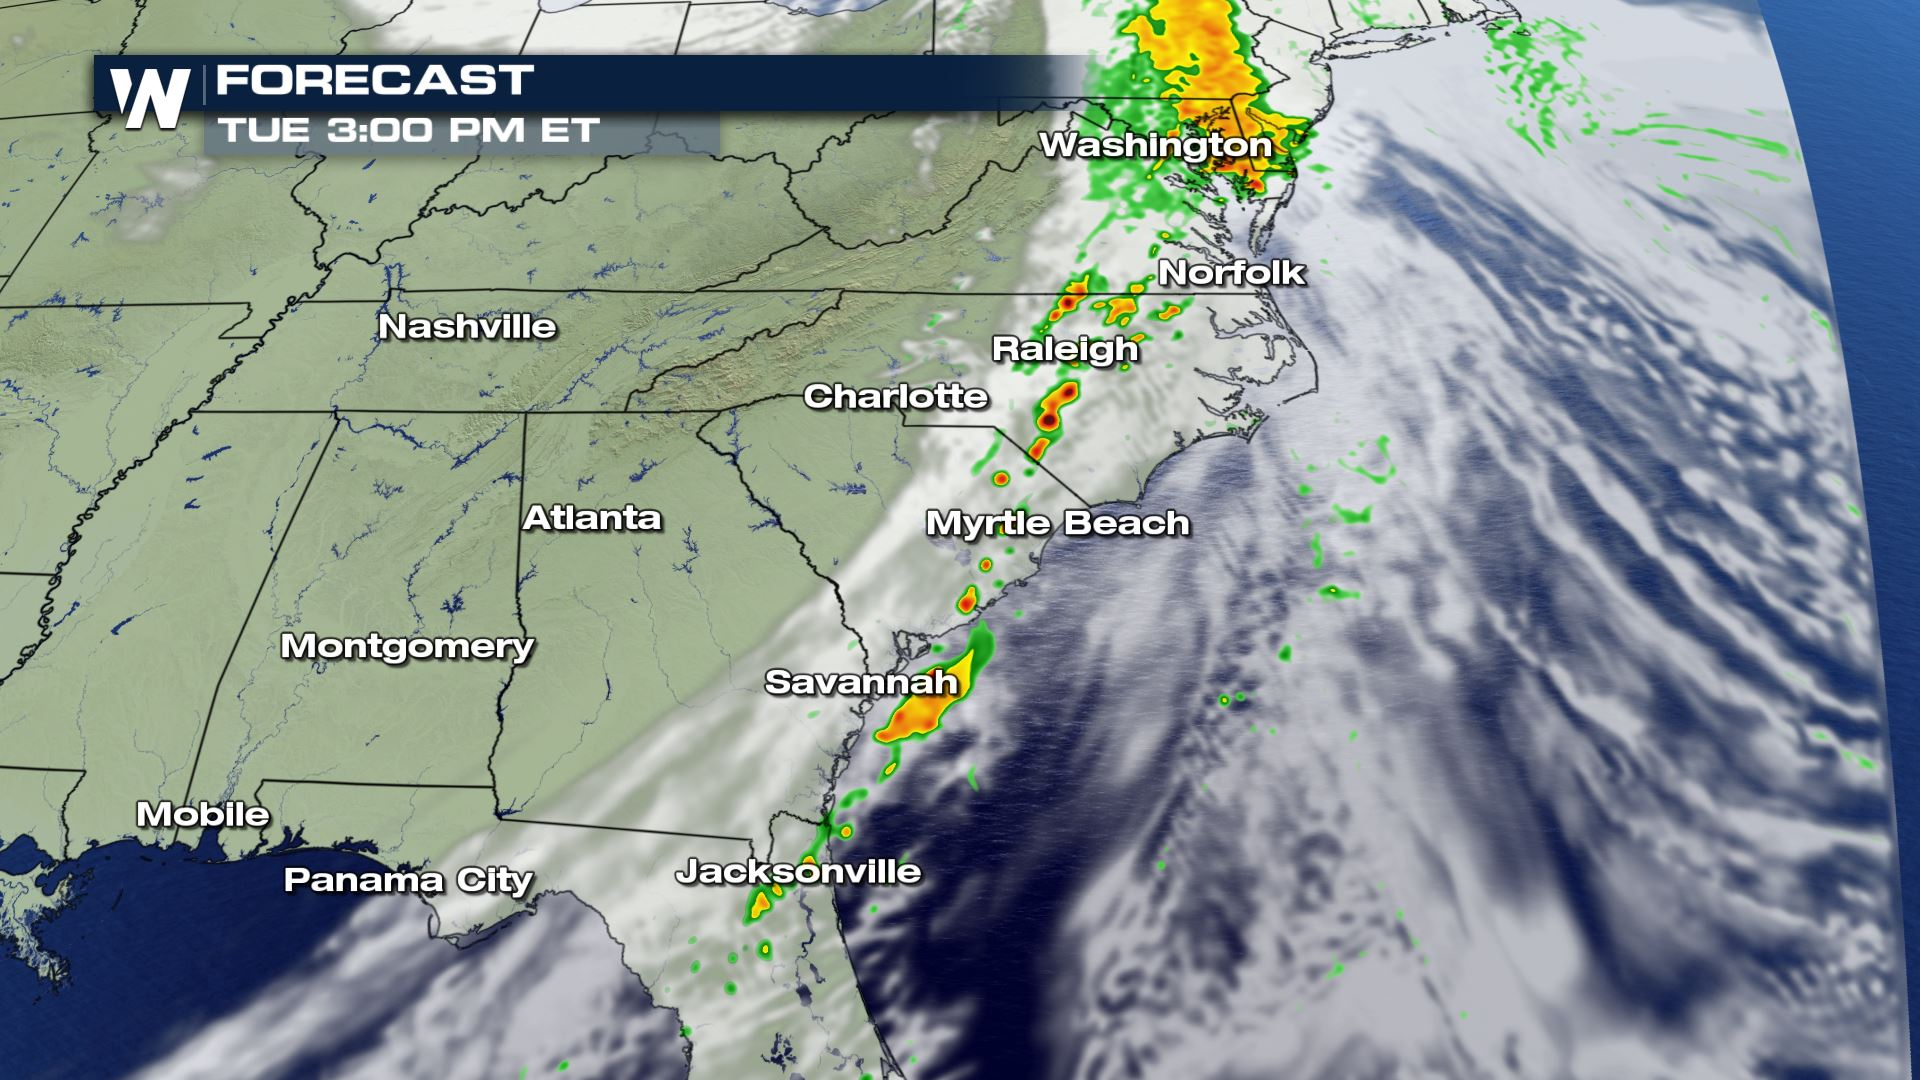 Severe Storms Possible in the Eastern U.S. Tuesday